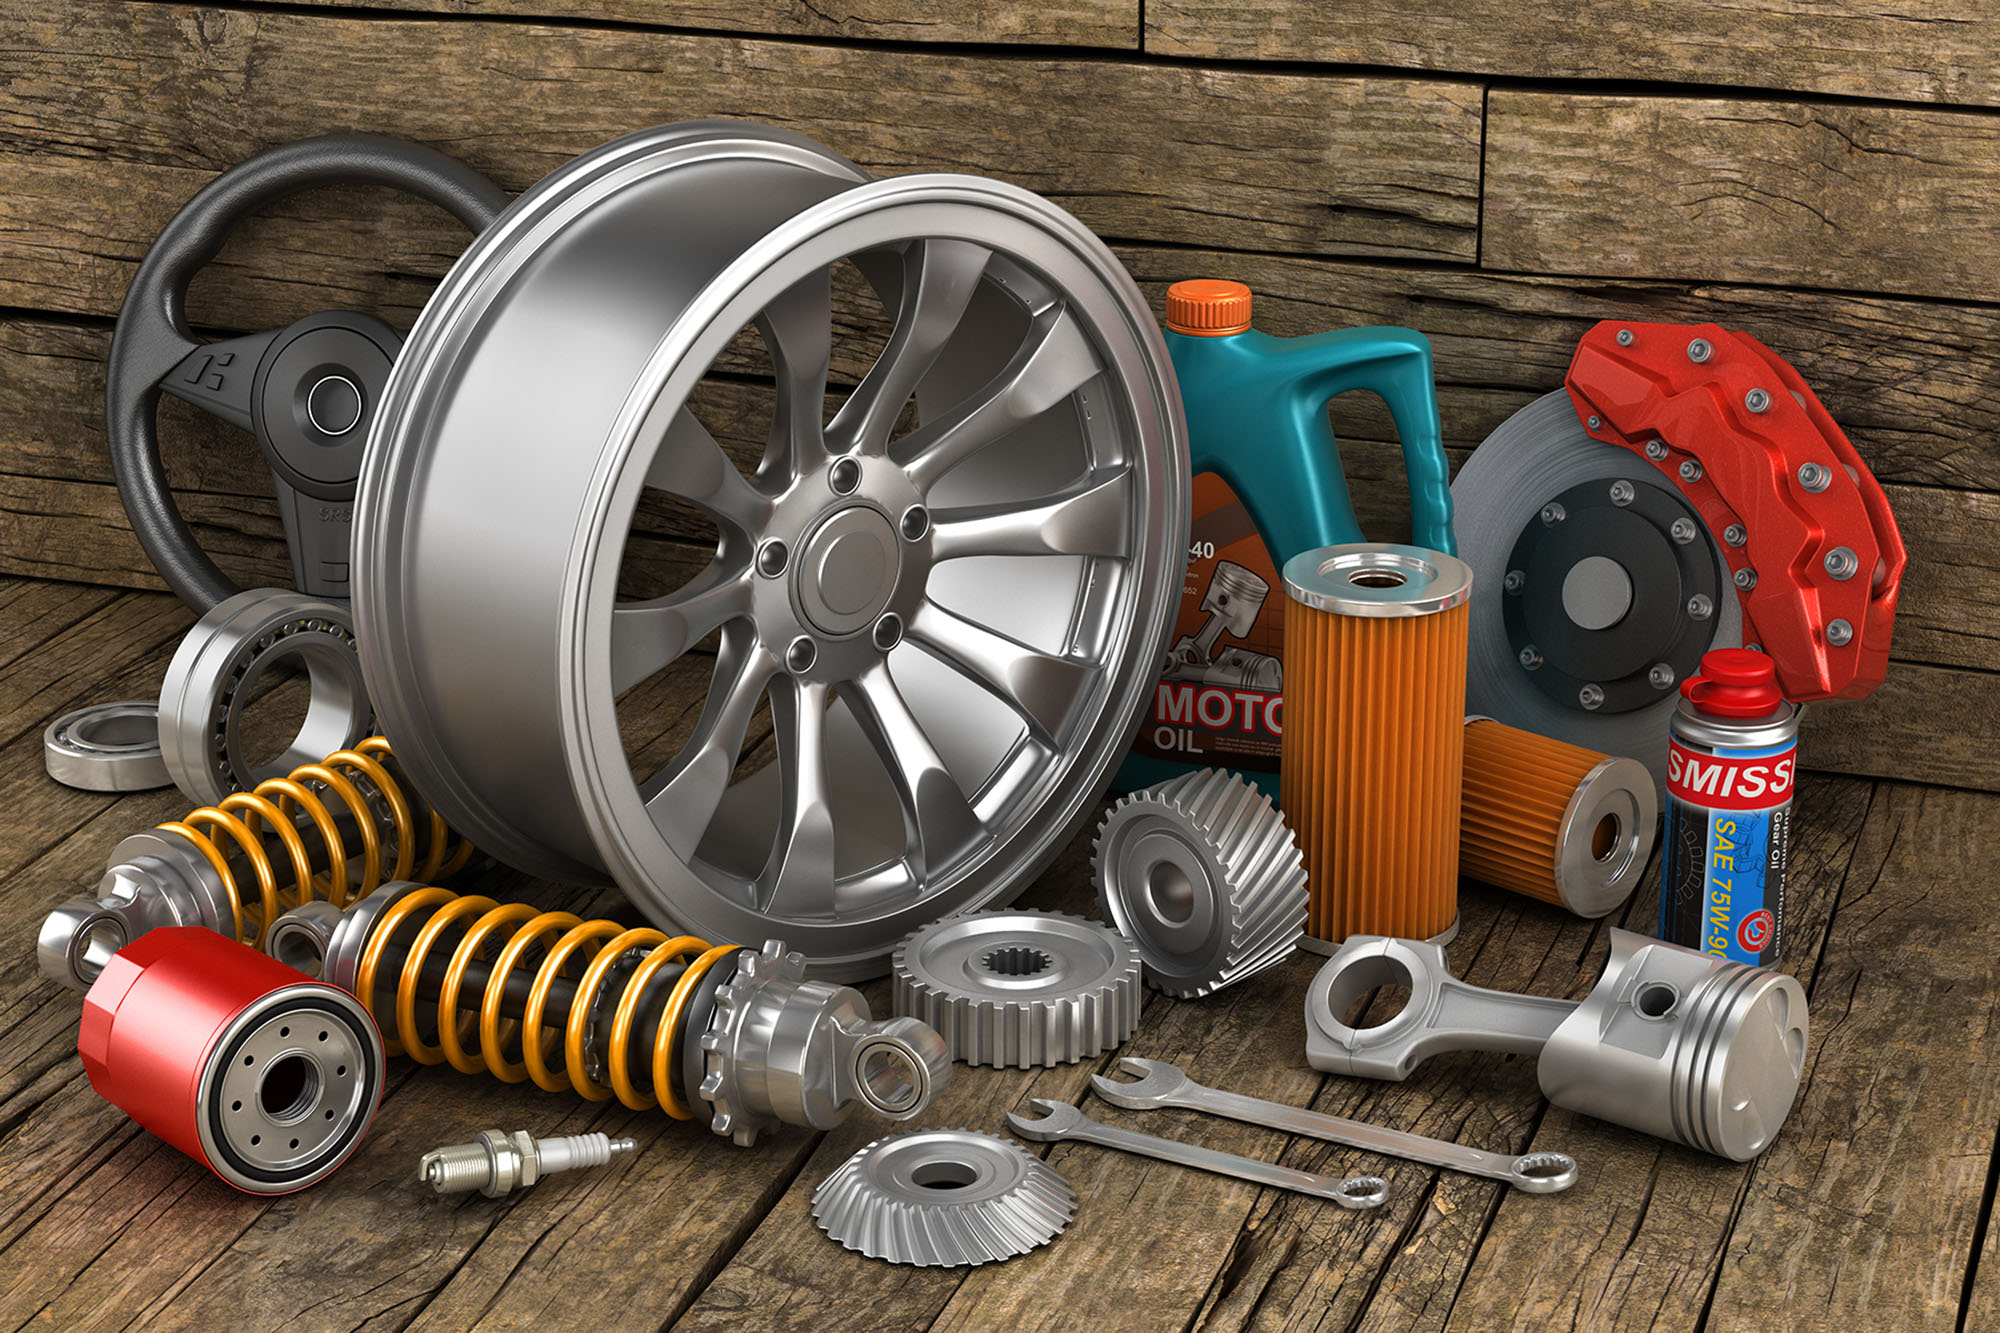 distributor of automobile parts and accessories participates in supply chain financing